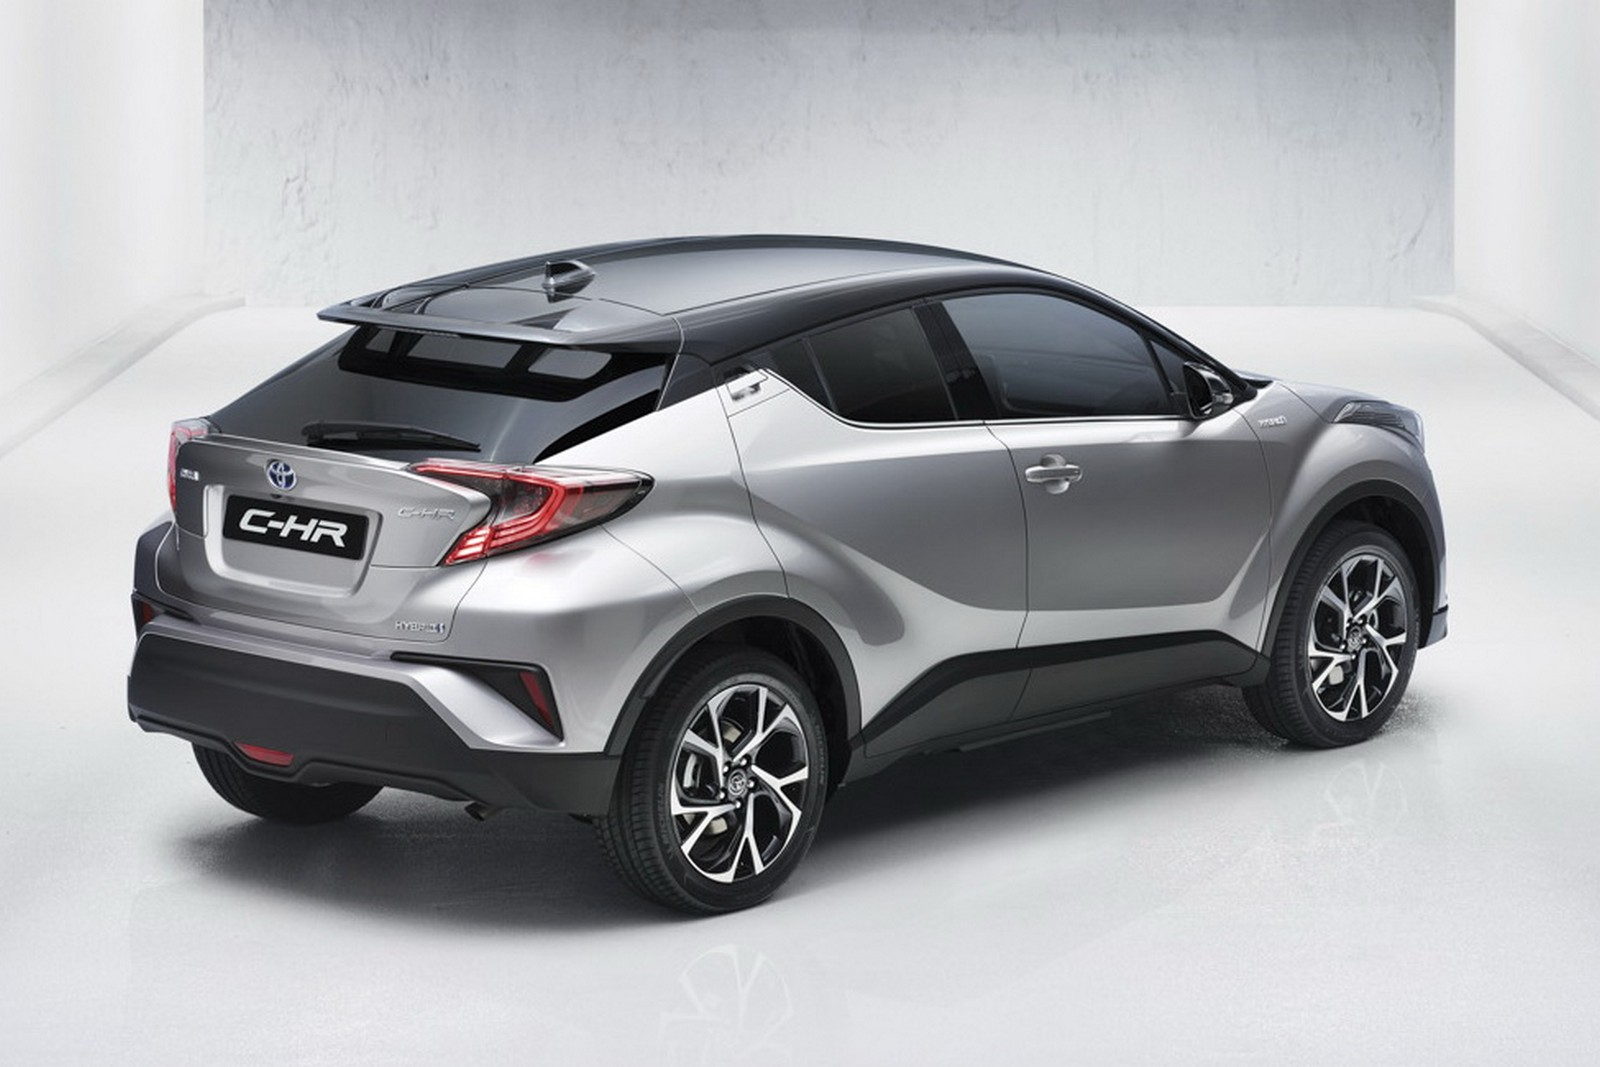 crossover c for awd no ch suv r hr toyota news tiny another subcompact h